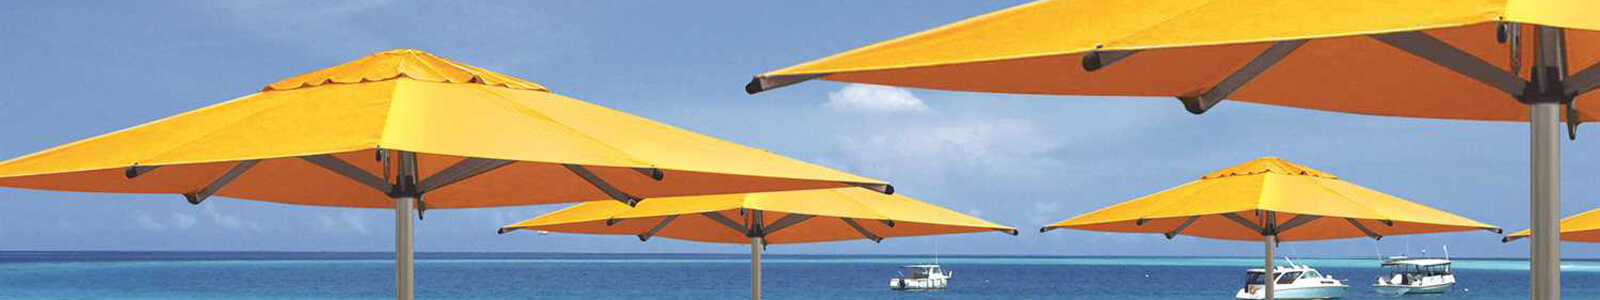 Shademaker Umbrellas: Offset & Cantilever Umbrella Sale Banner